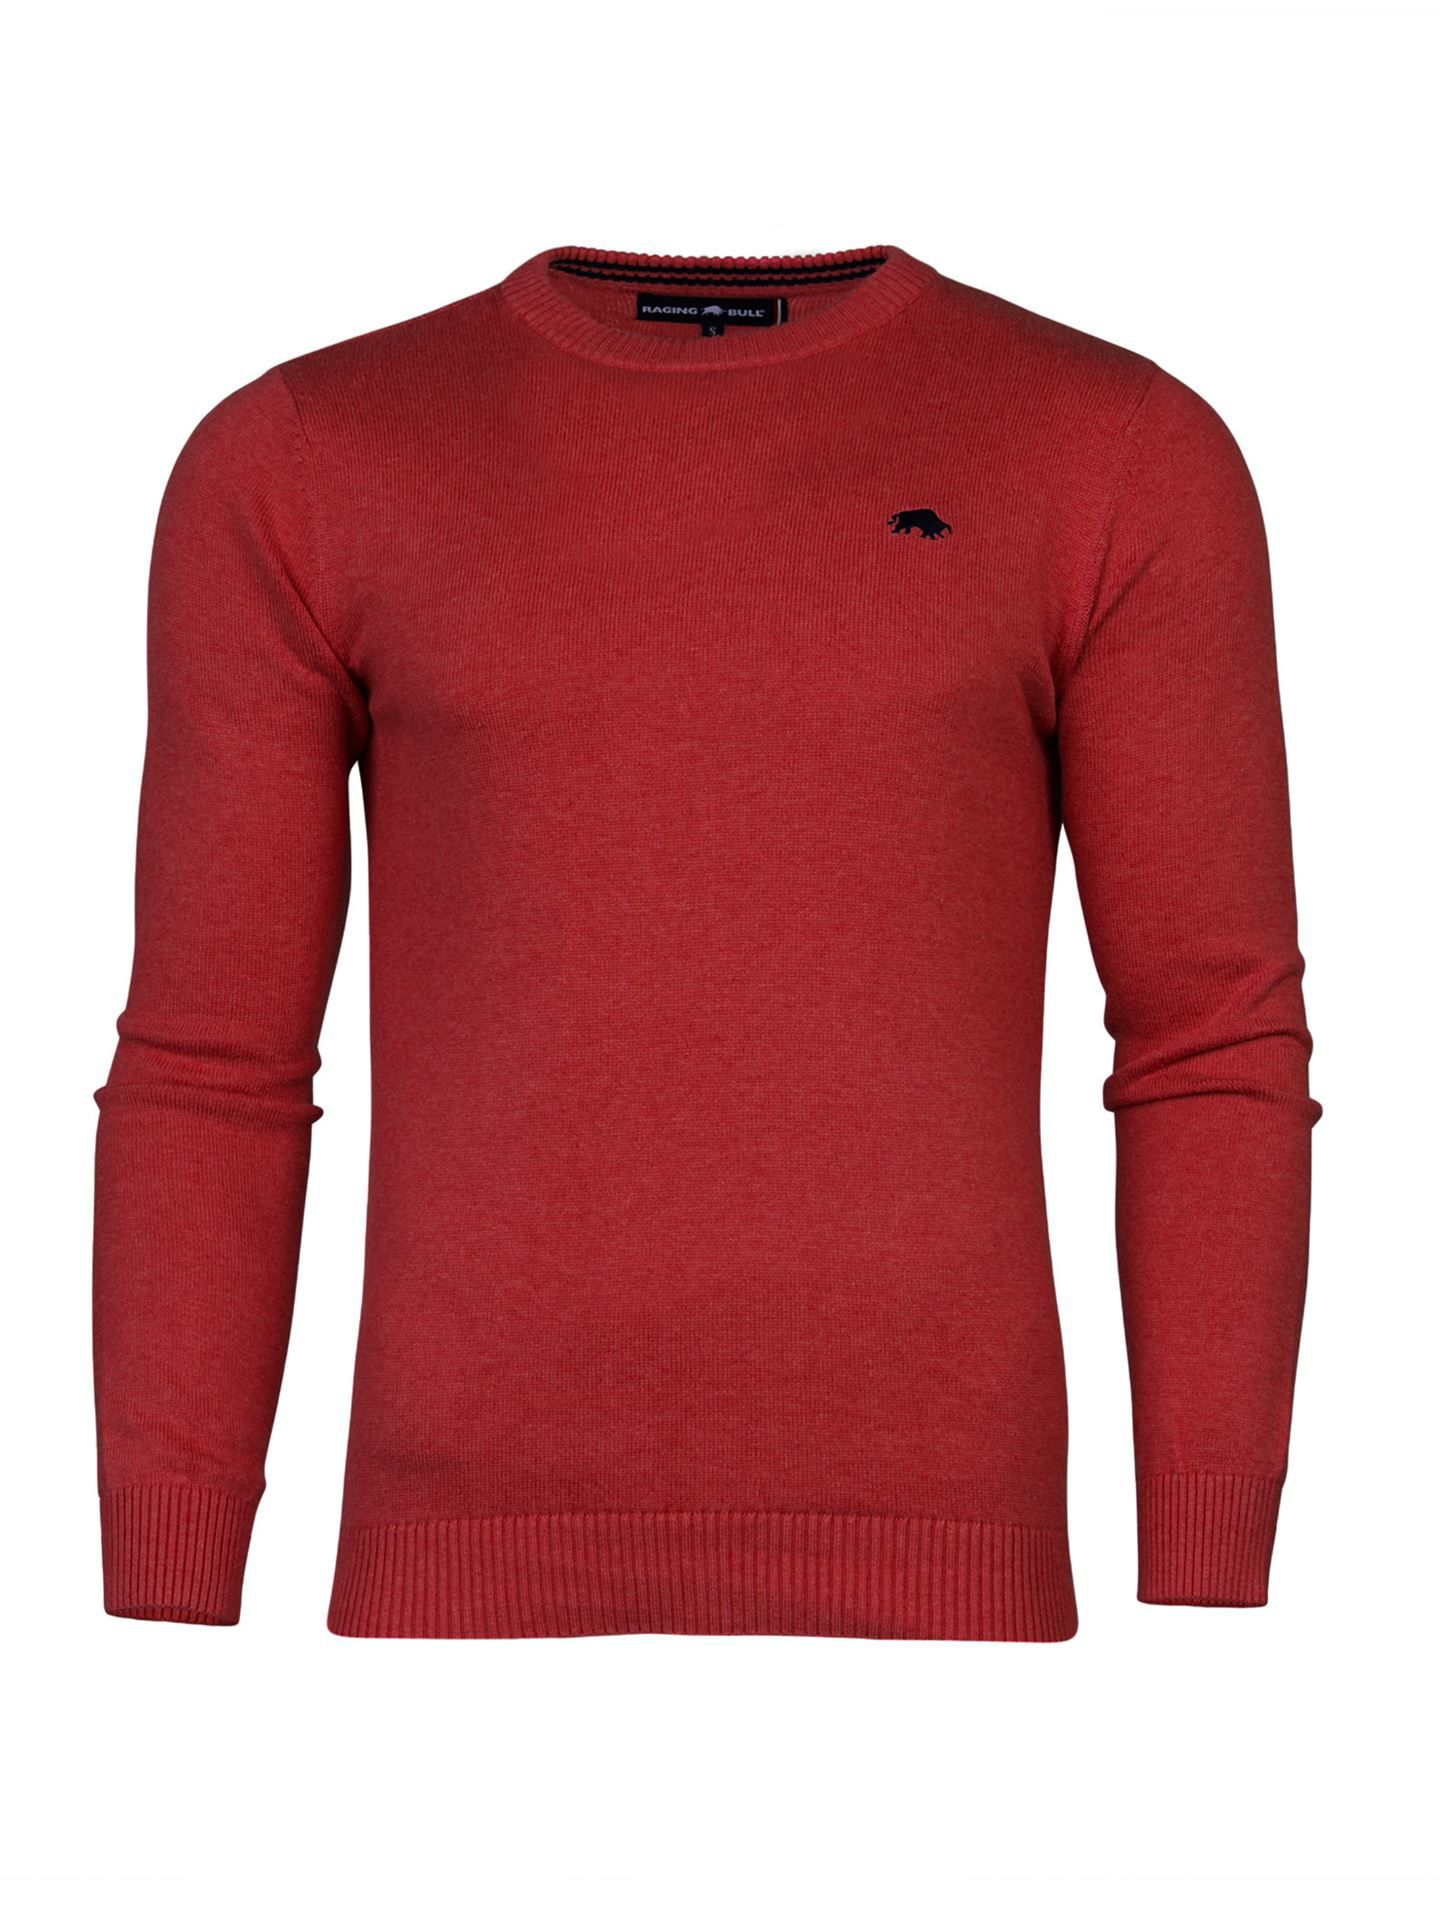 Men's Raging Bull Big & Tall Cotton Crew Sweater, Red